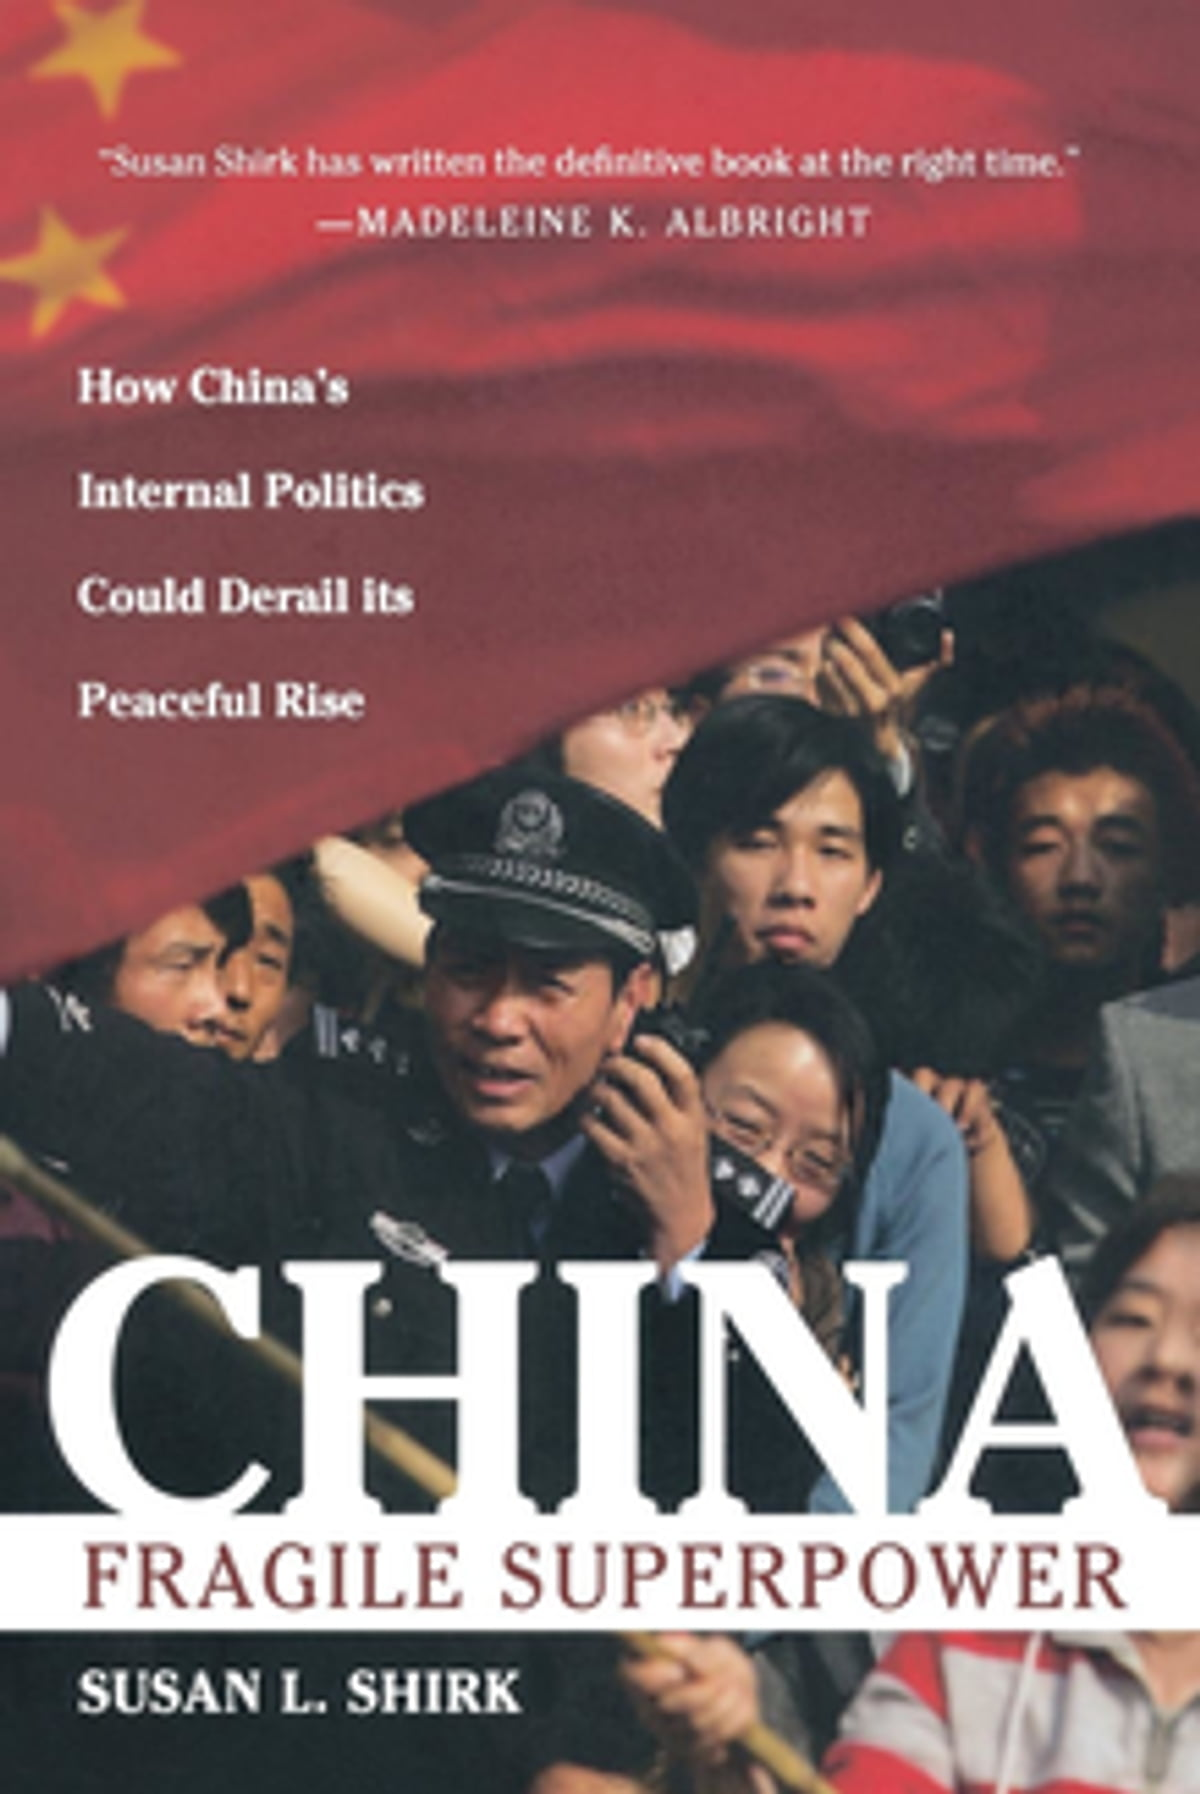 China: Fragile Superpower : How China's Internal Politics Could Derail Its  Peaceful Rise eBook by Susan L. Shirk - 9780199839889   Rakuten Kobo